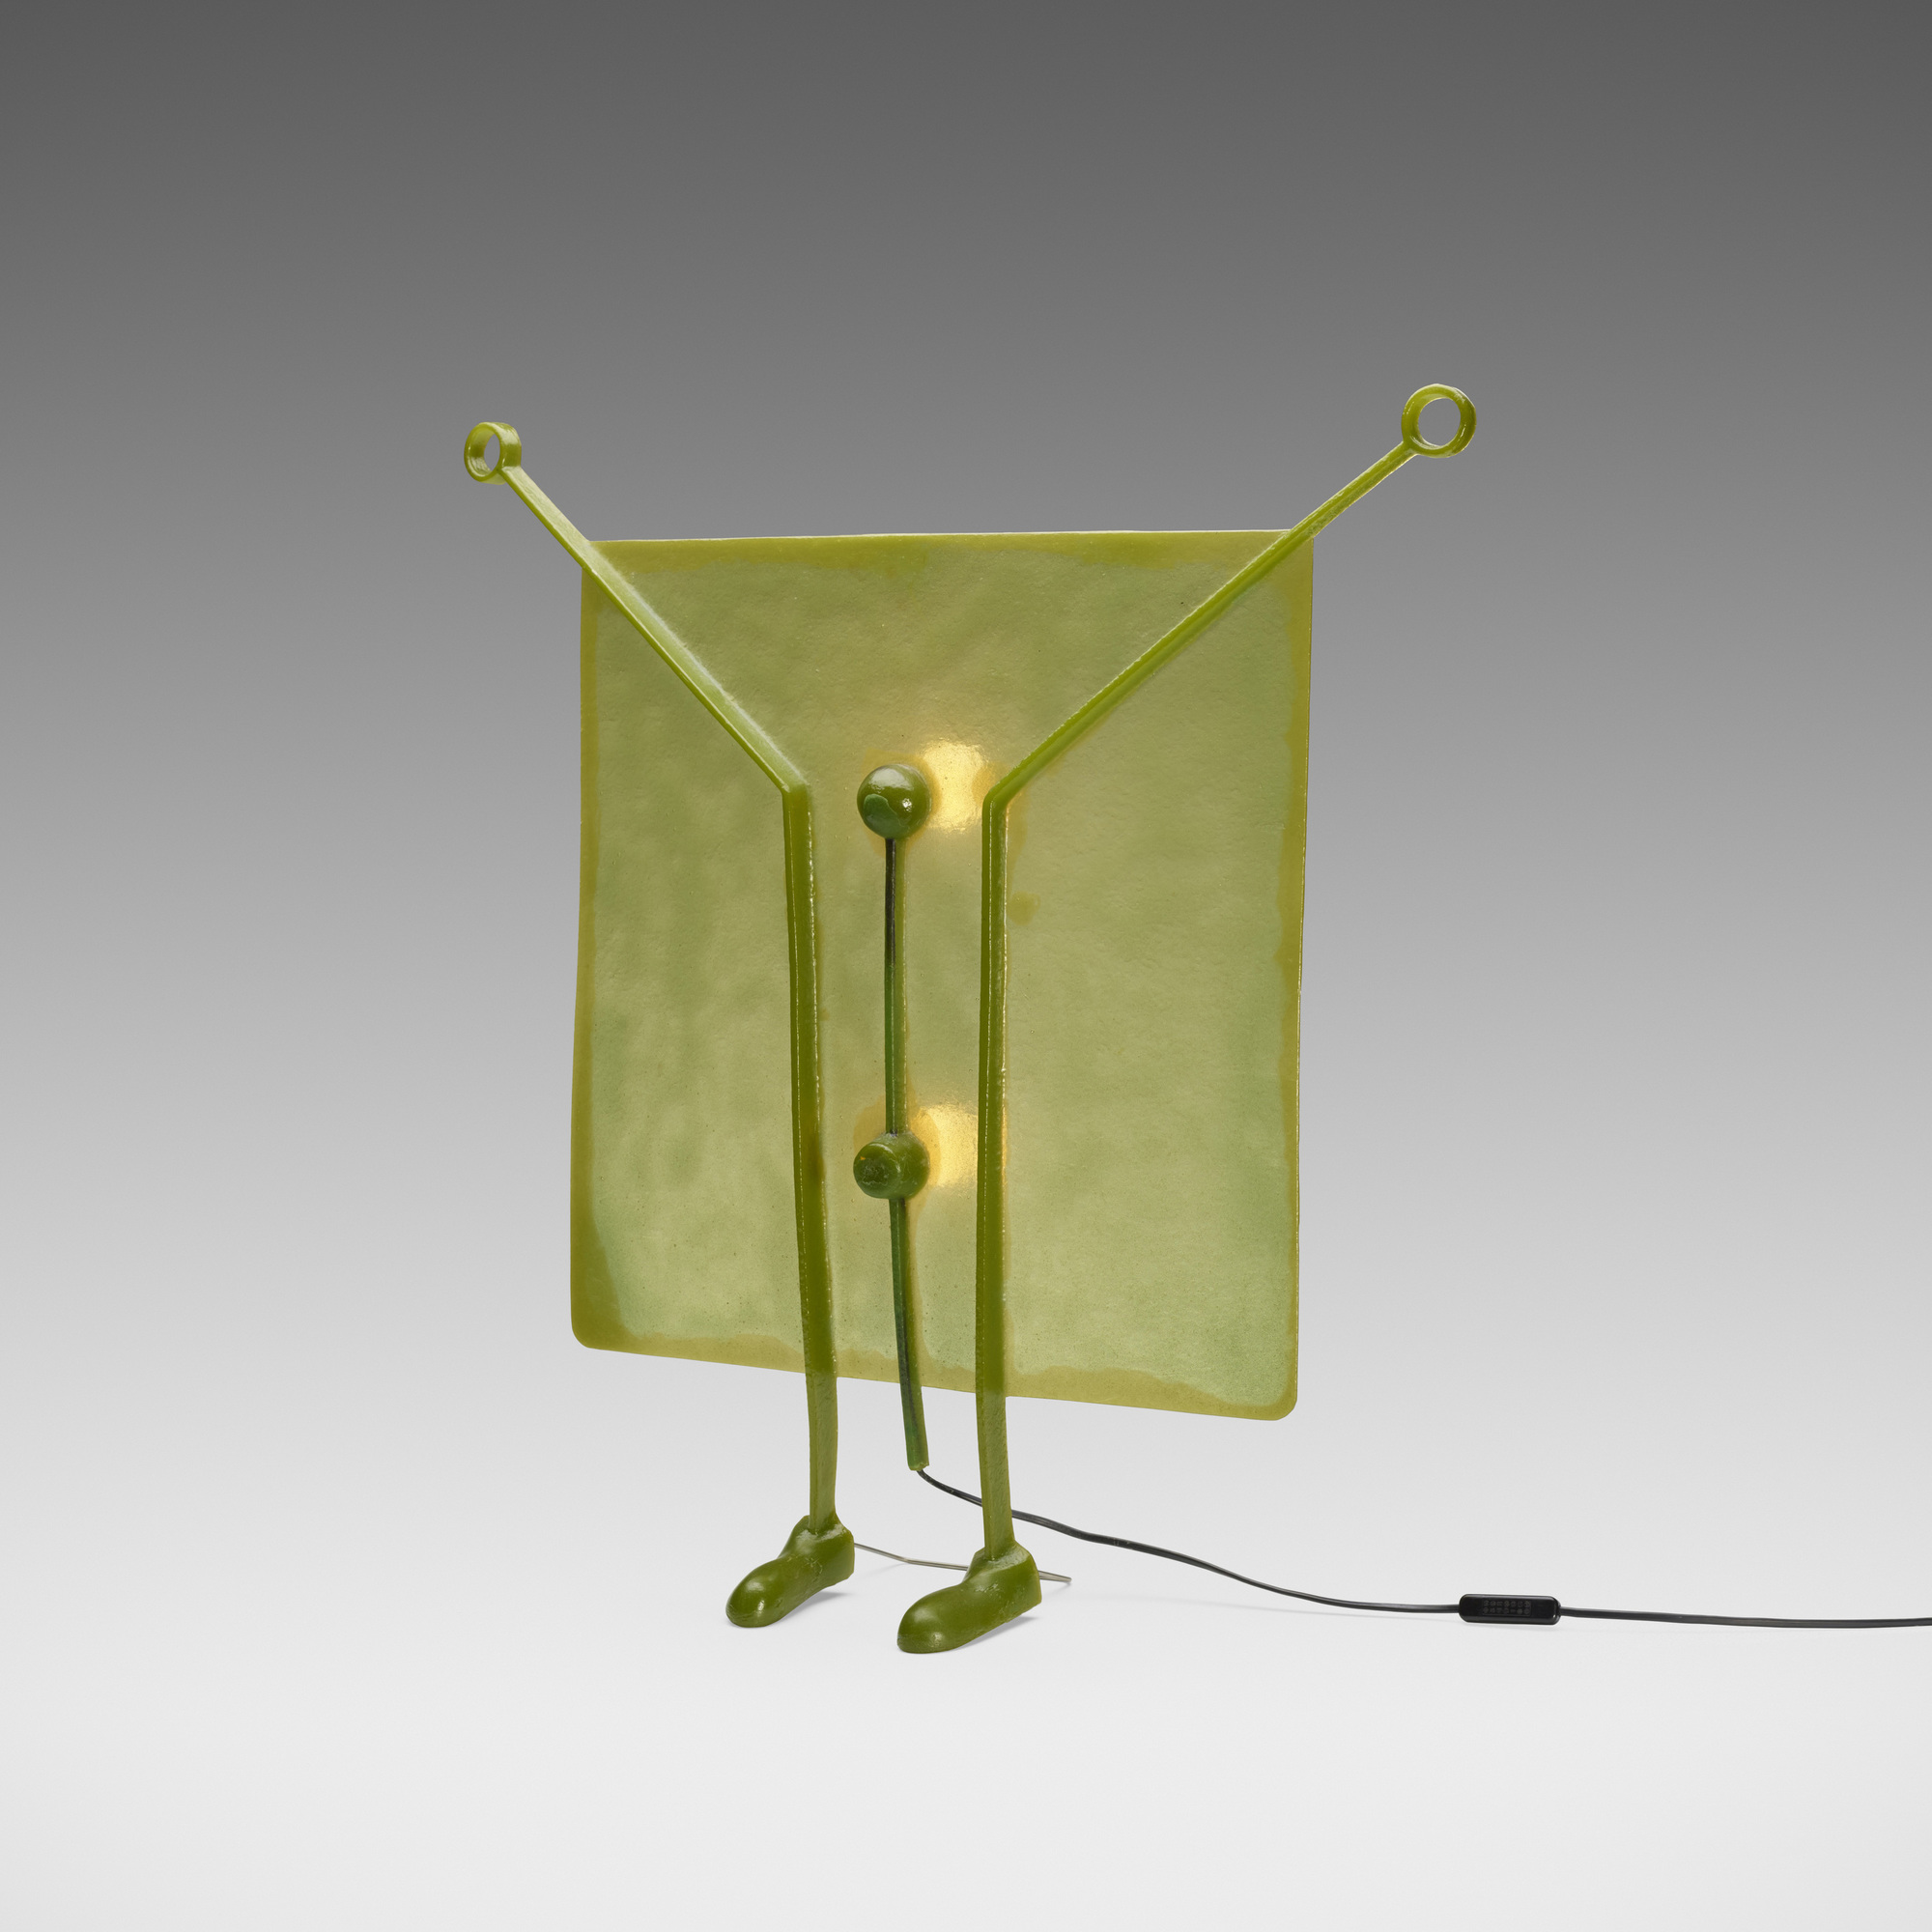 284: Gaetano Pesce / Salvatore table lamp from the Open Sky series (2 of 2)